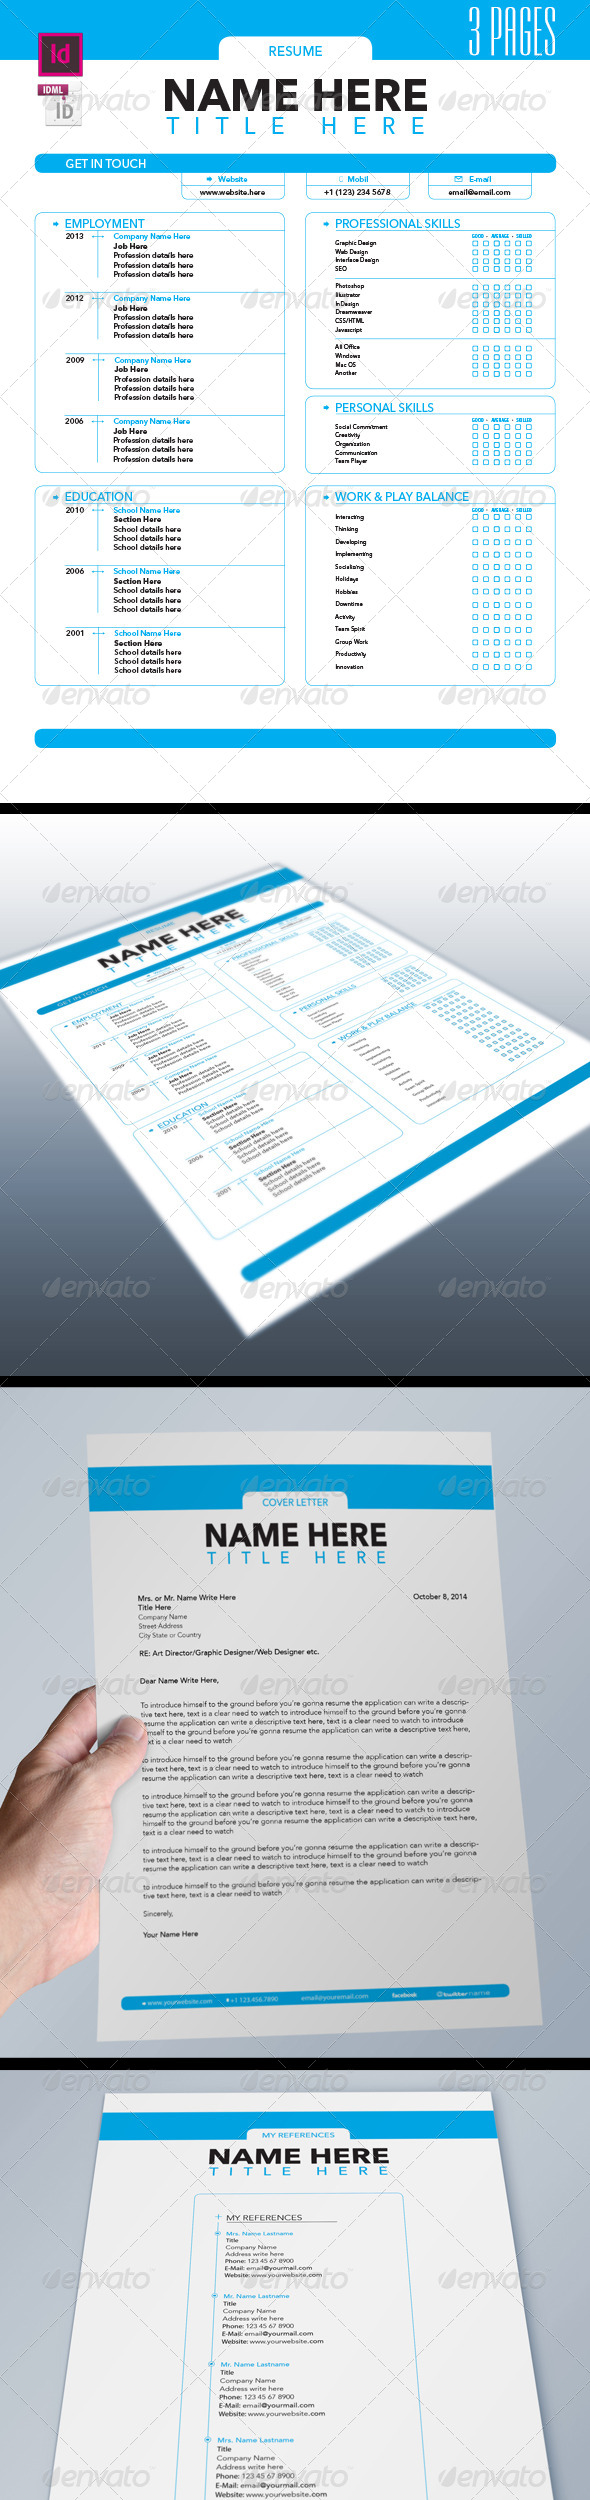 Job Resume Set 3 Pages - Resumes Stationery